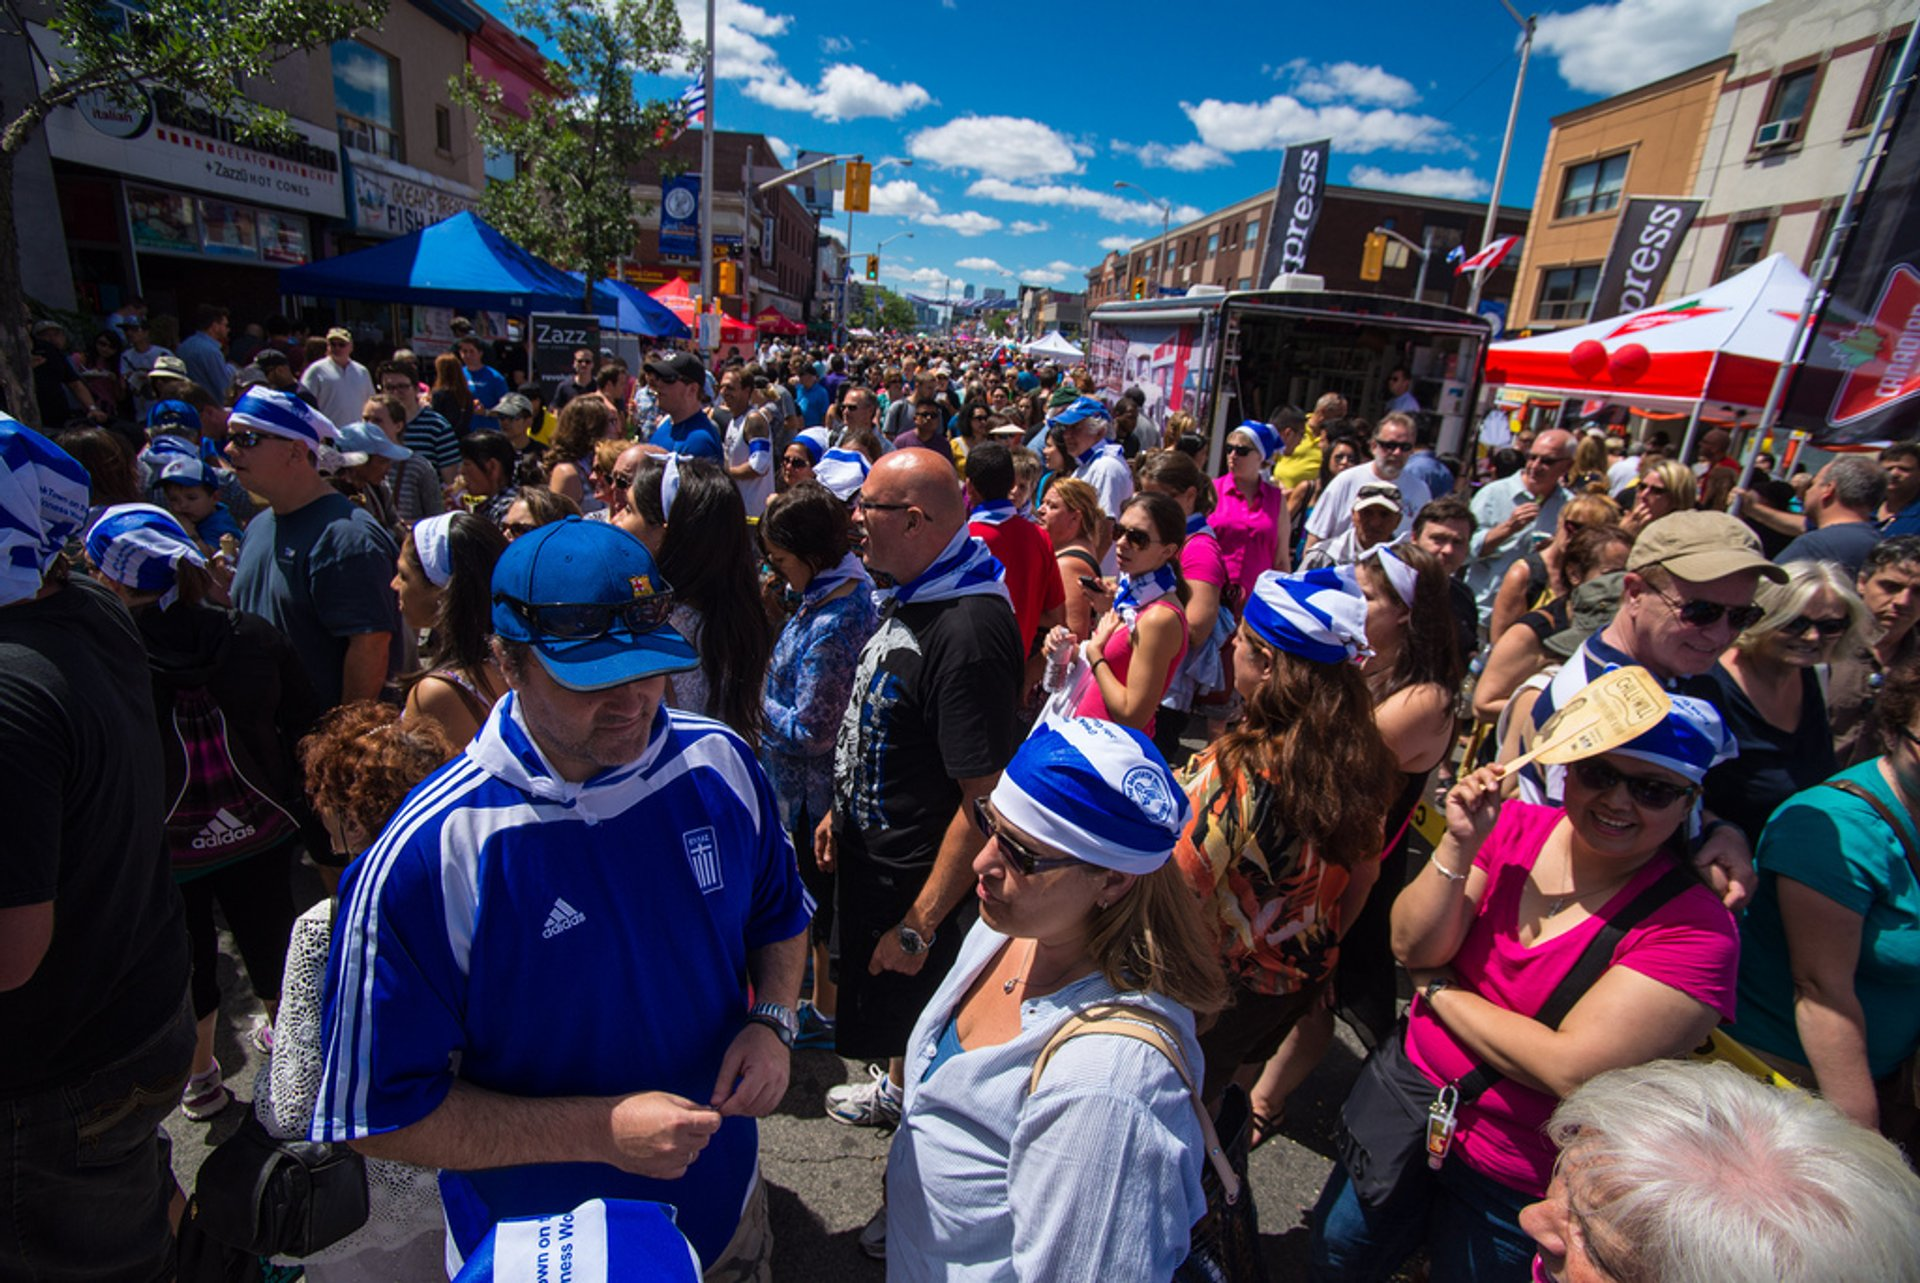 Taste of the Danforth in Toronto - Best Season 2020